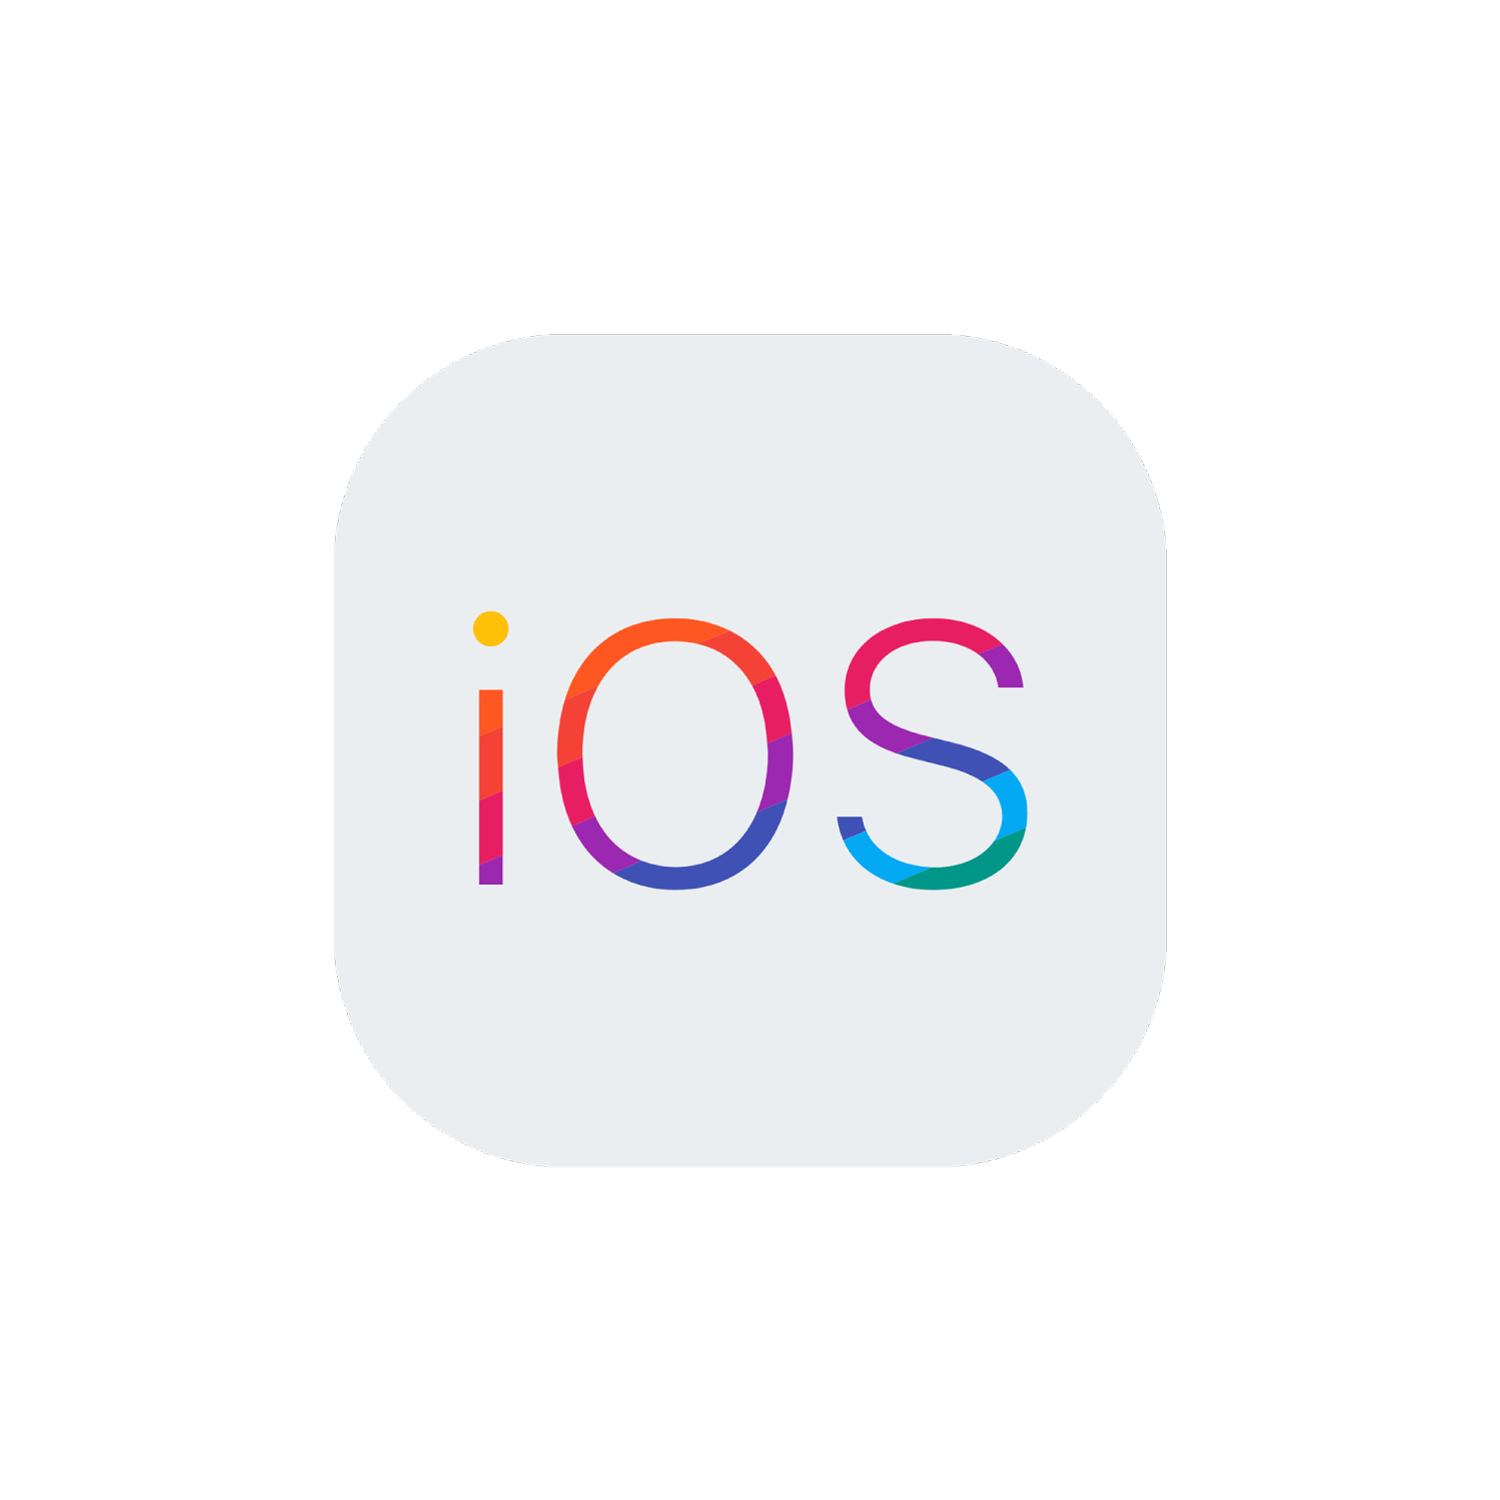 IOS.png